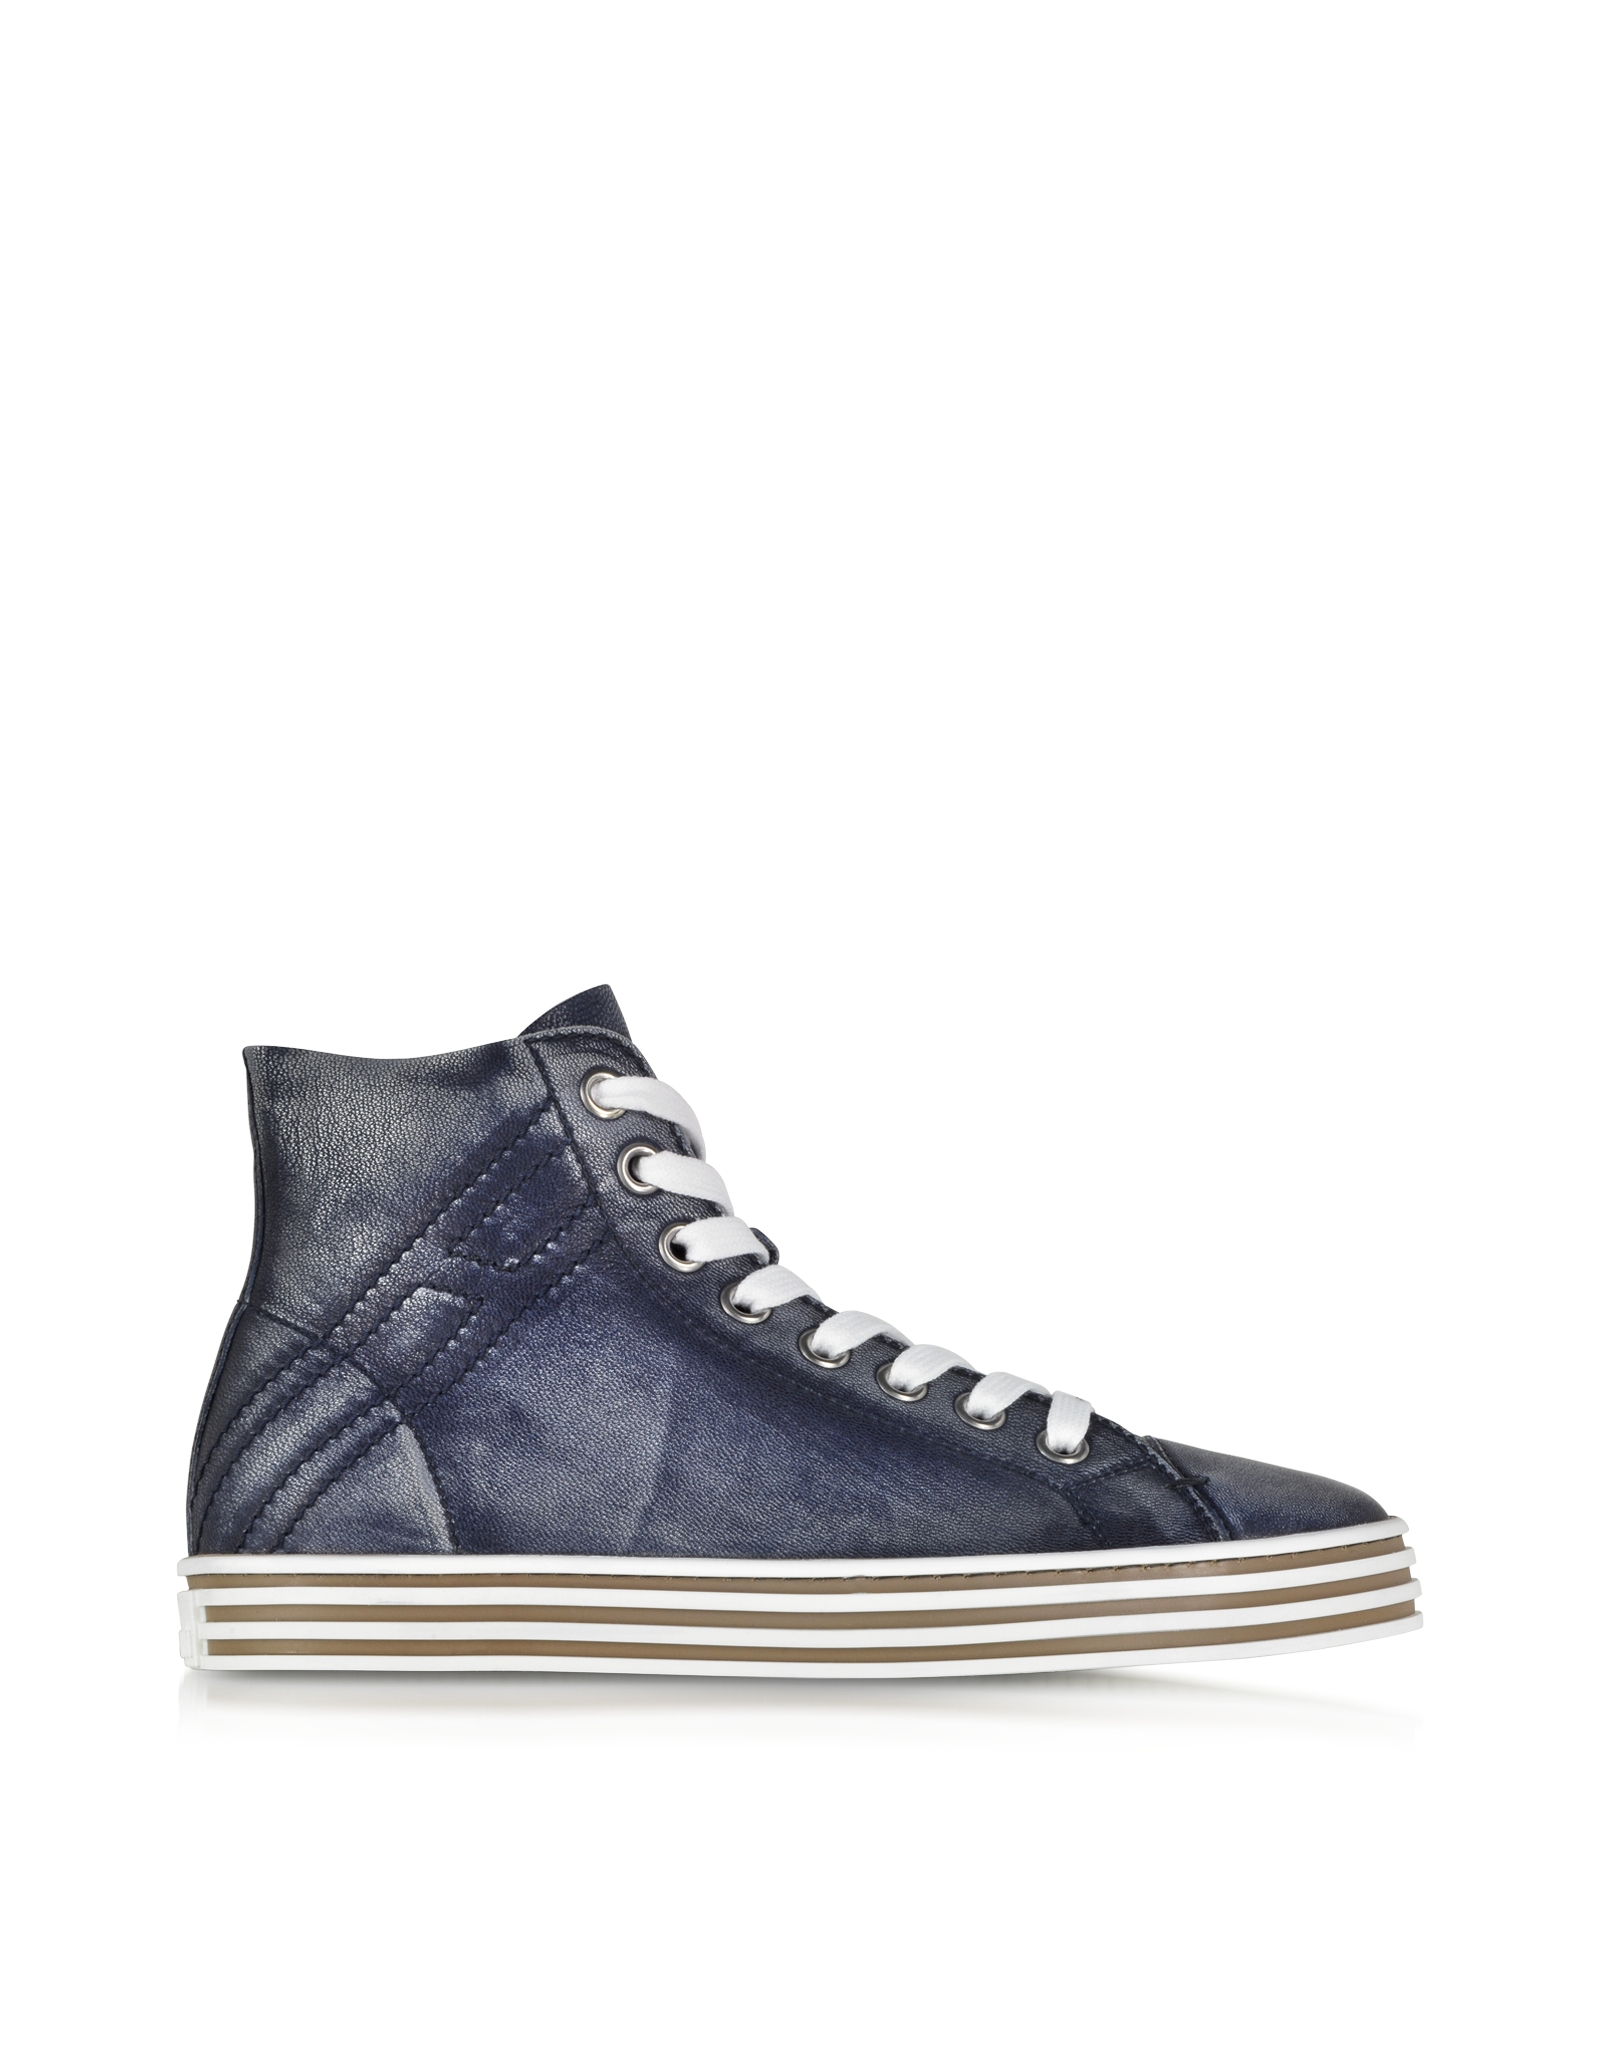 Free shipping and returns on Men's High Top Sneakers & Athletic Shoes at neidagrosk0dwju.ga